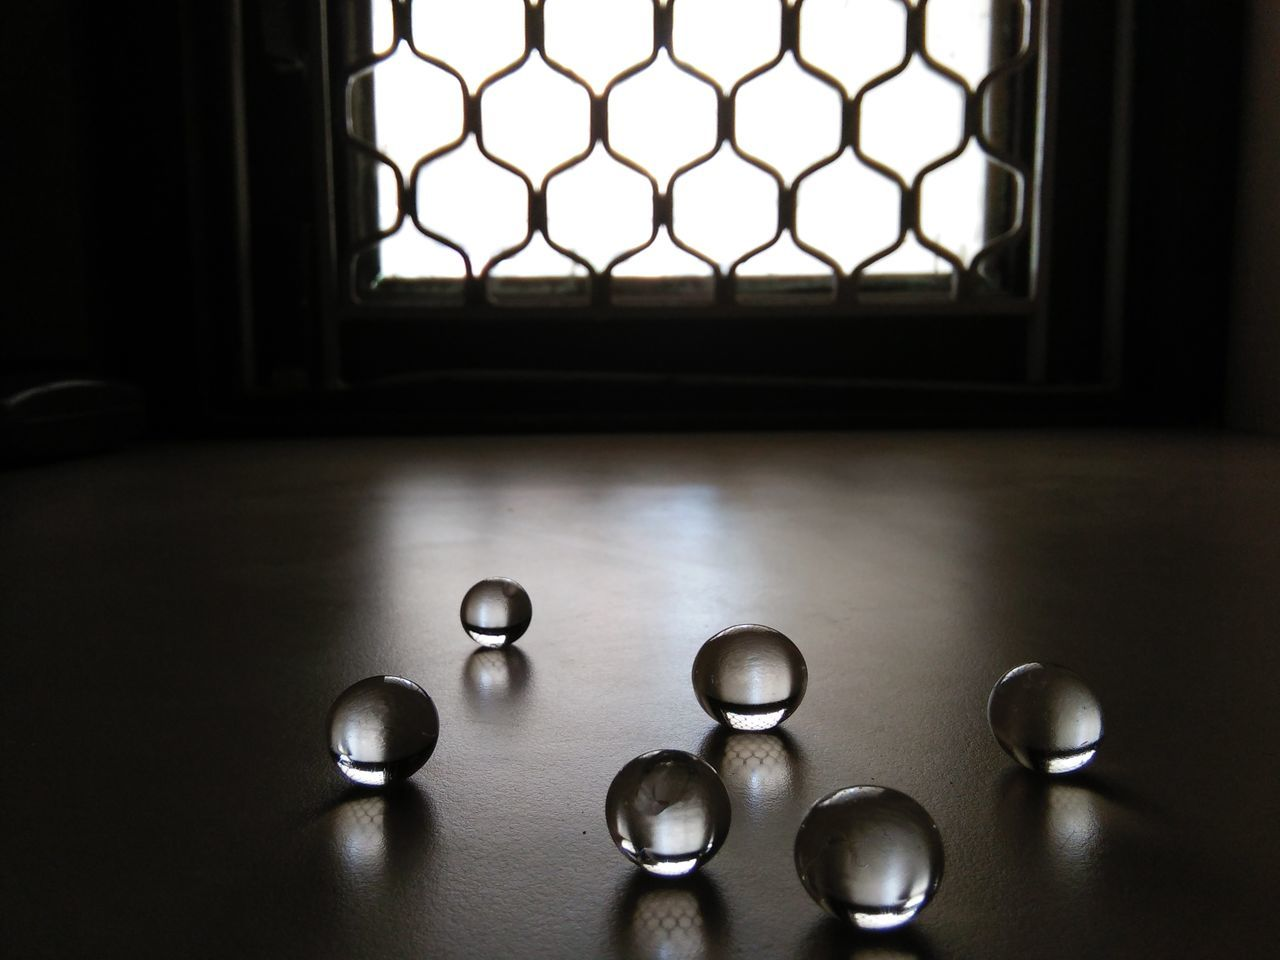 No People Indoors  Day Window Welcome To Black Balls Water Balls Monochrome Close-up Still Life Choice Arrangement Large Group Of Objects Reflection Sunlight Indoors  Variation Art Is Everywhere ミーノー!!